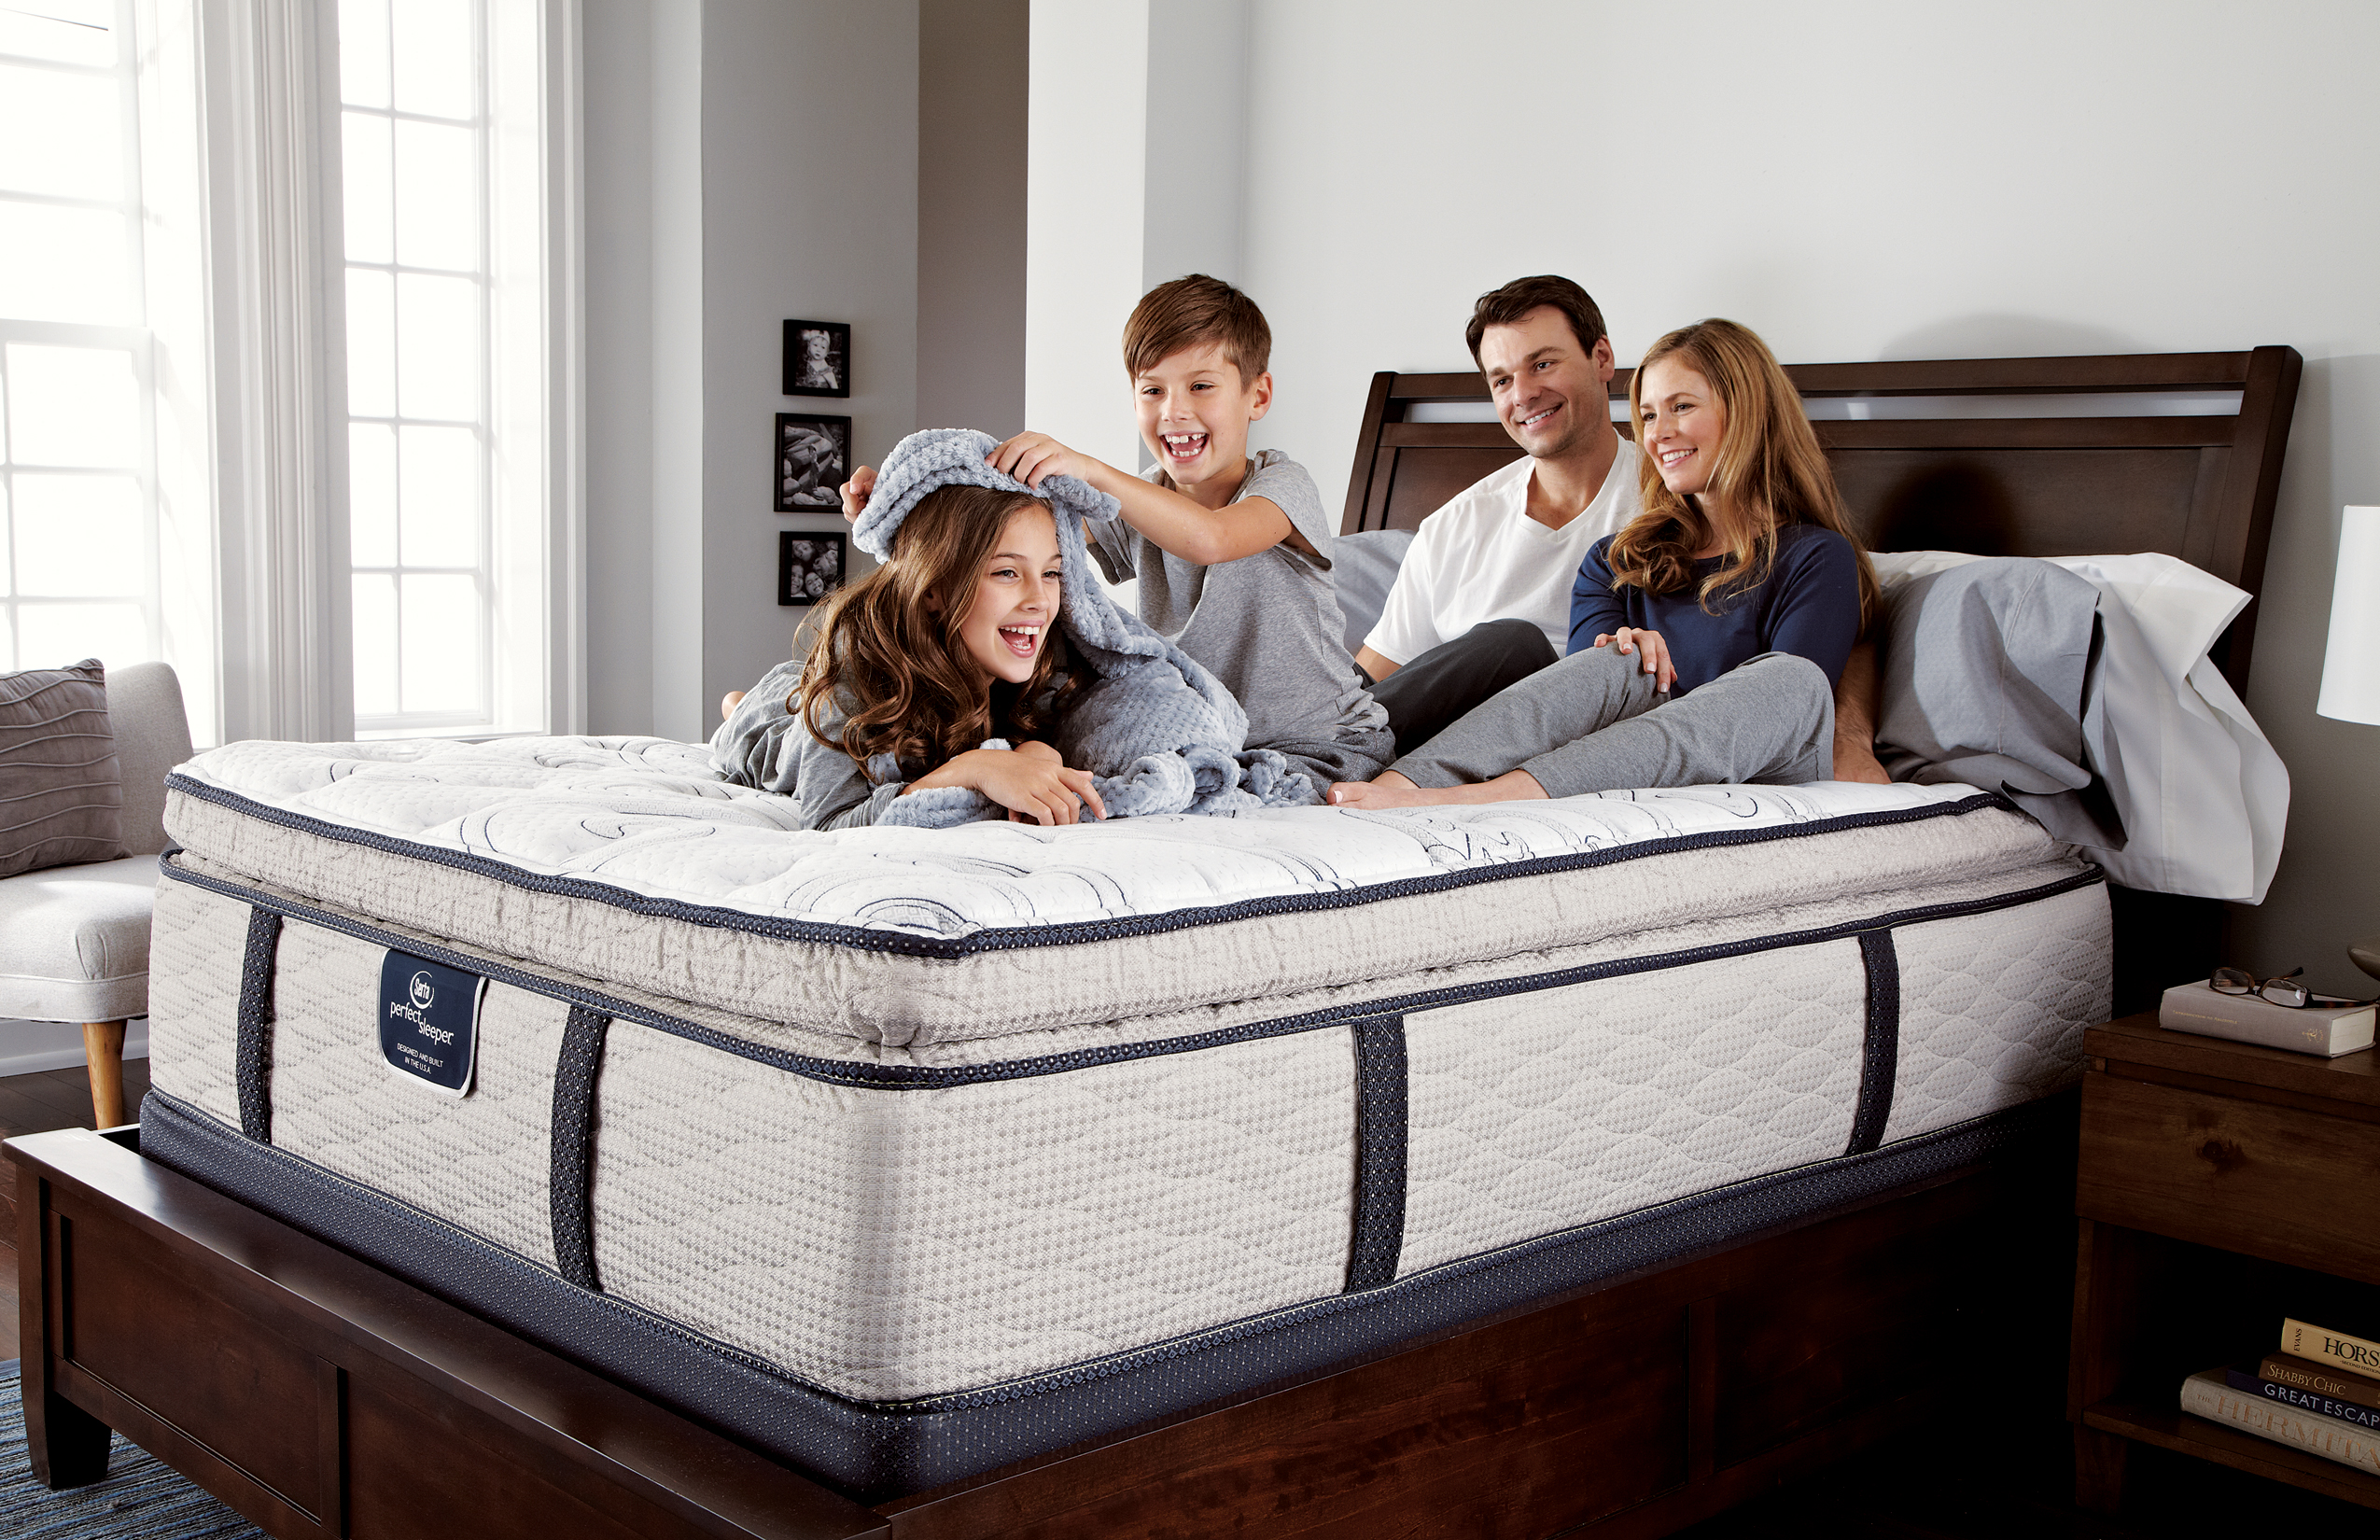 wert sealy s plush euro world makes belfair iseries them van the awesome pillowtop reviews mattress of best sells serta luxury